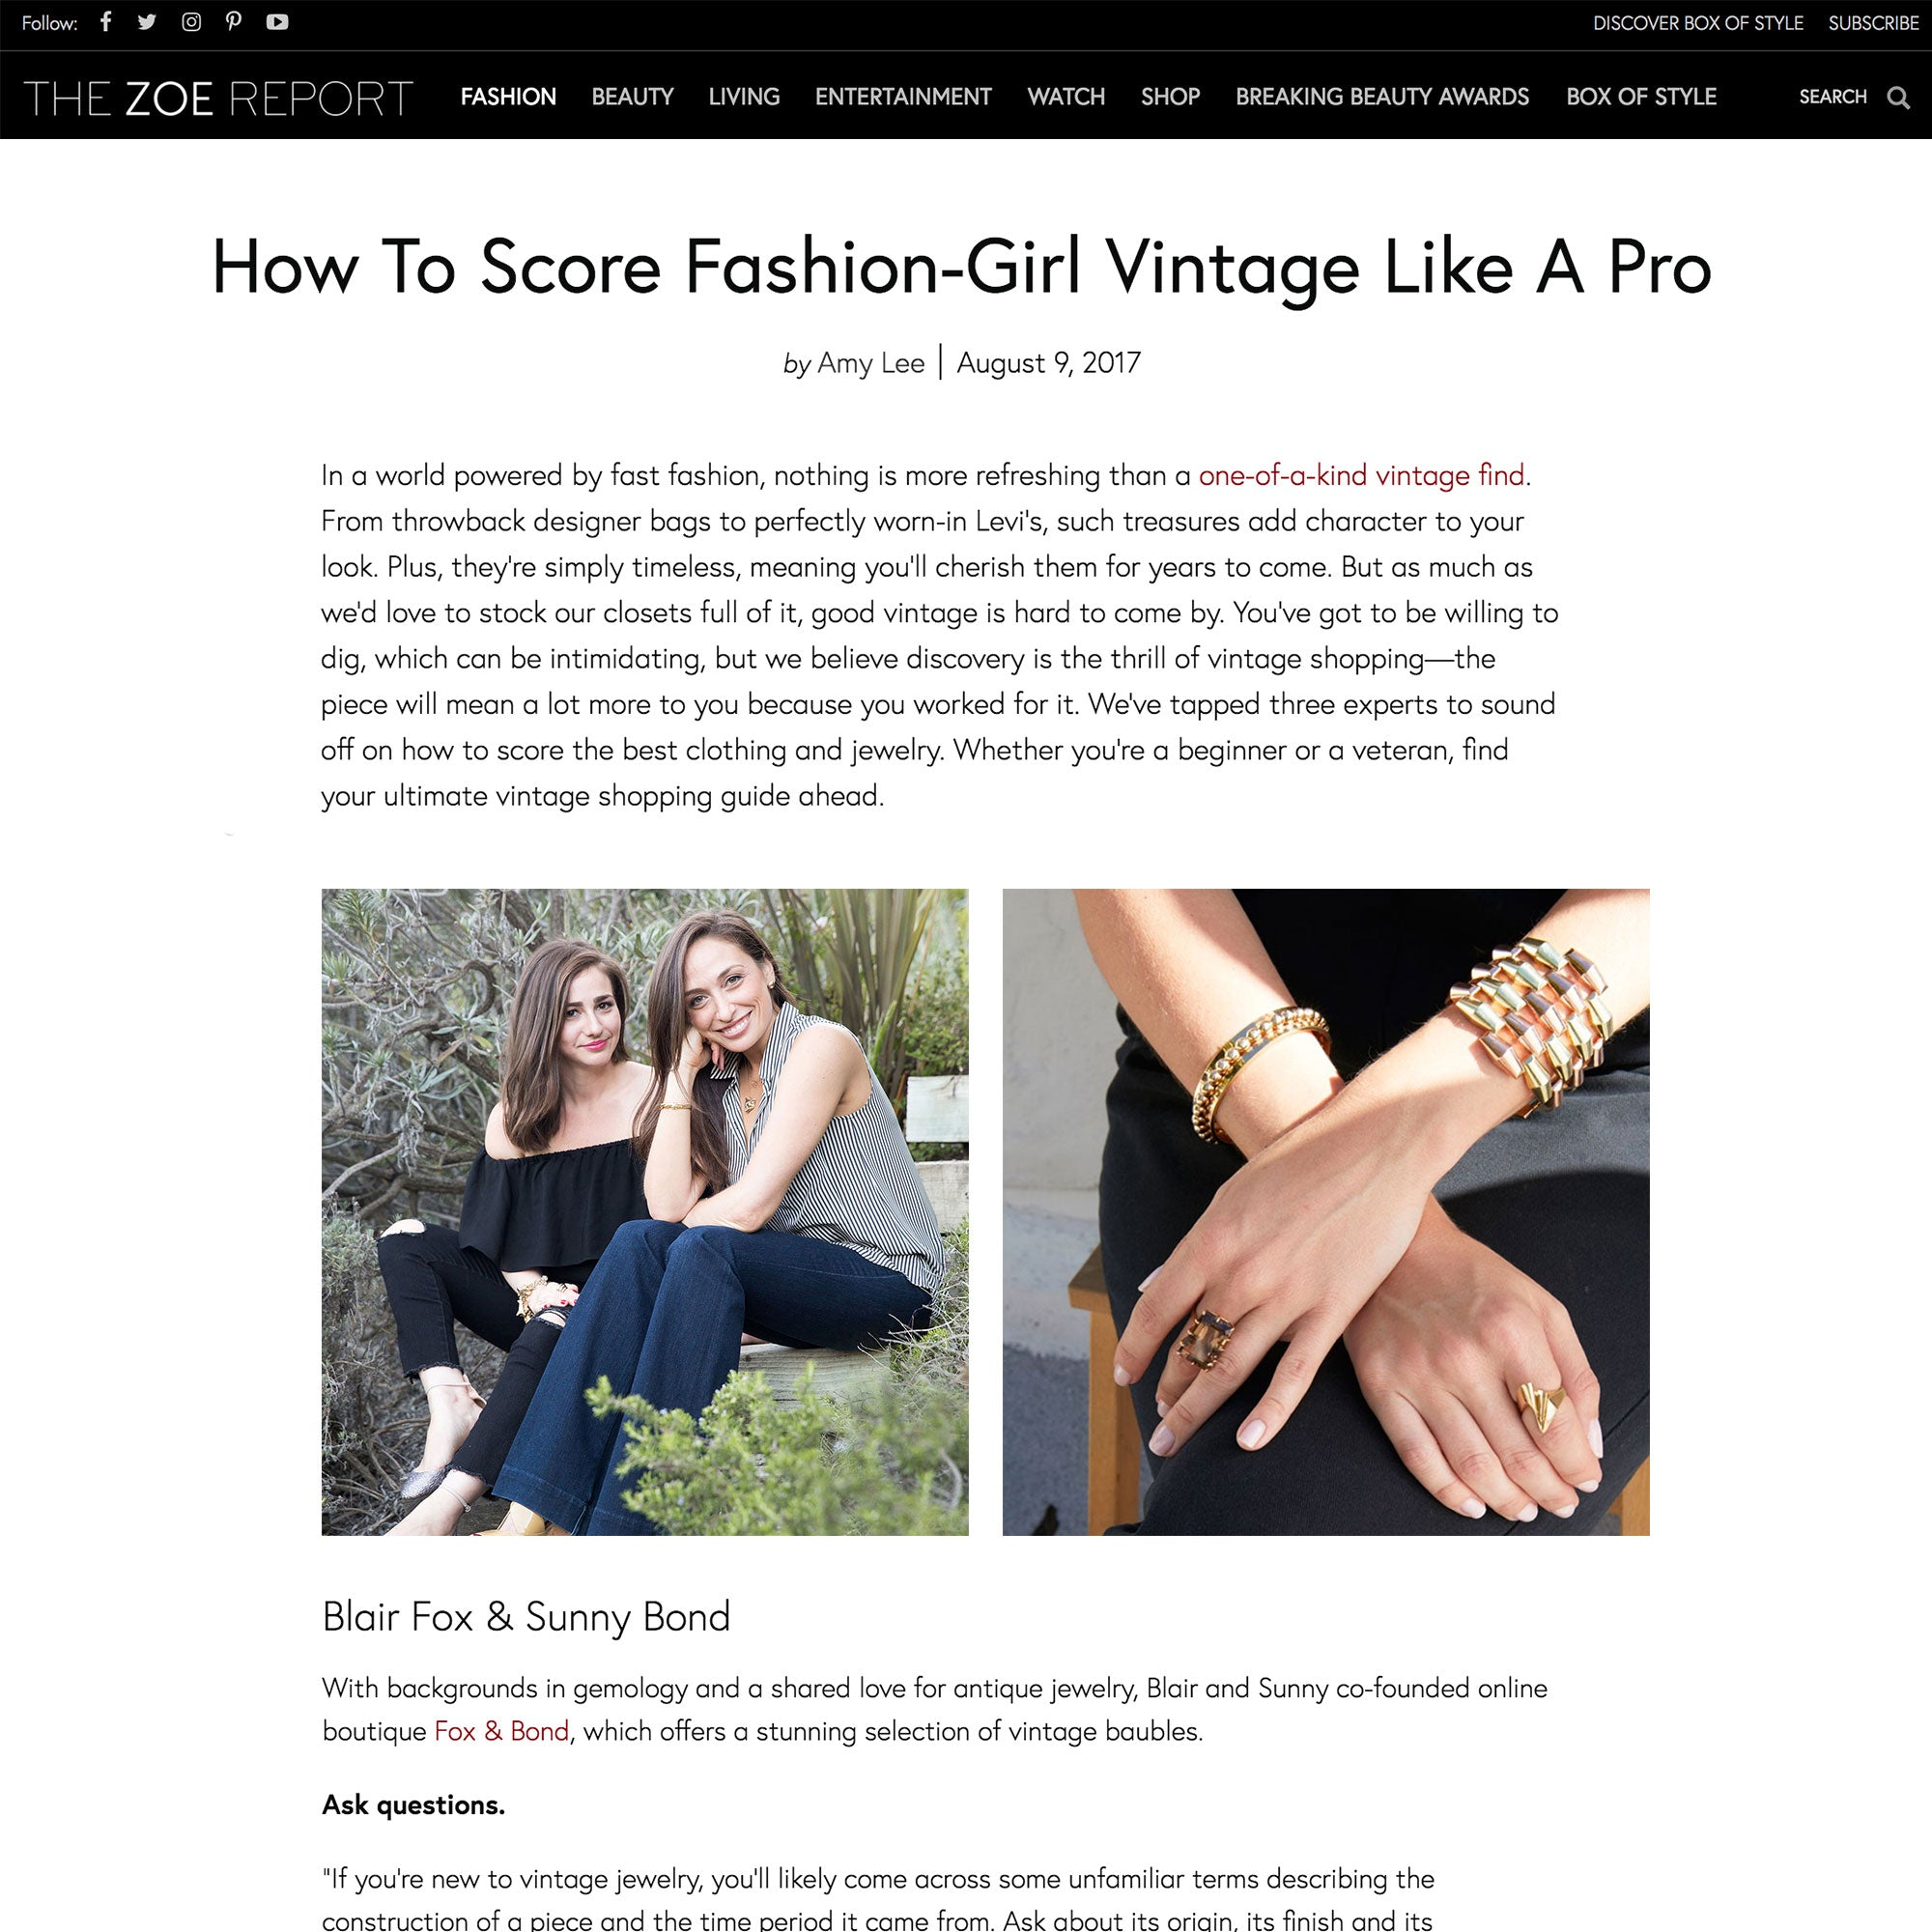 The Zoe Report: How To Score Fashion-Girl Vintage Like A Pro